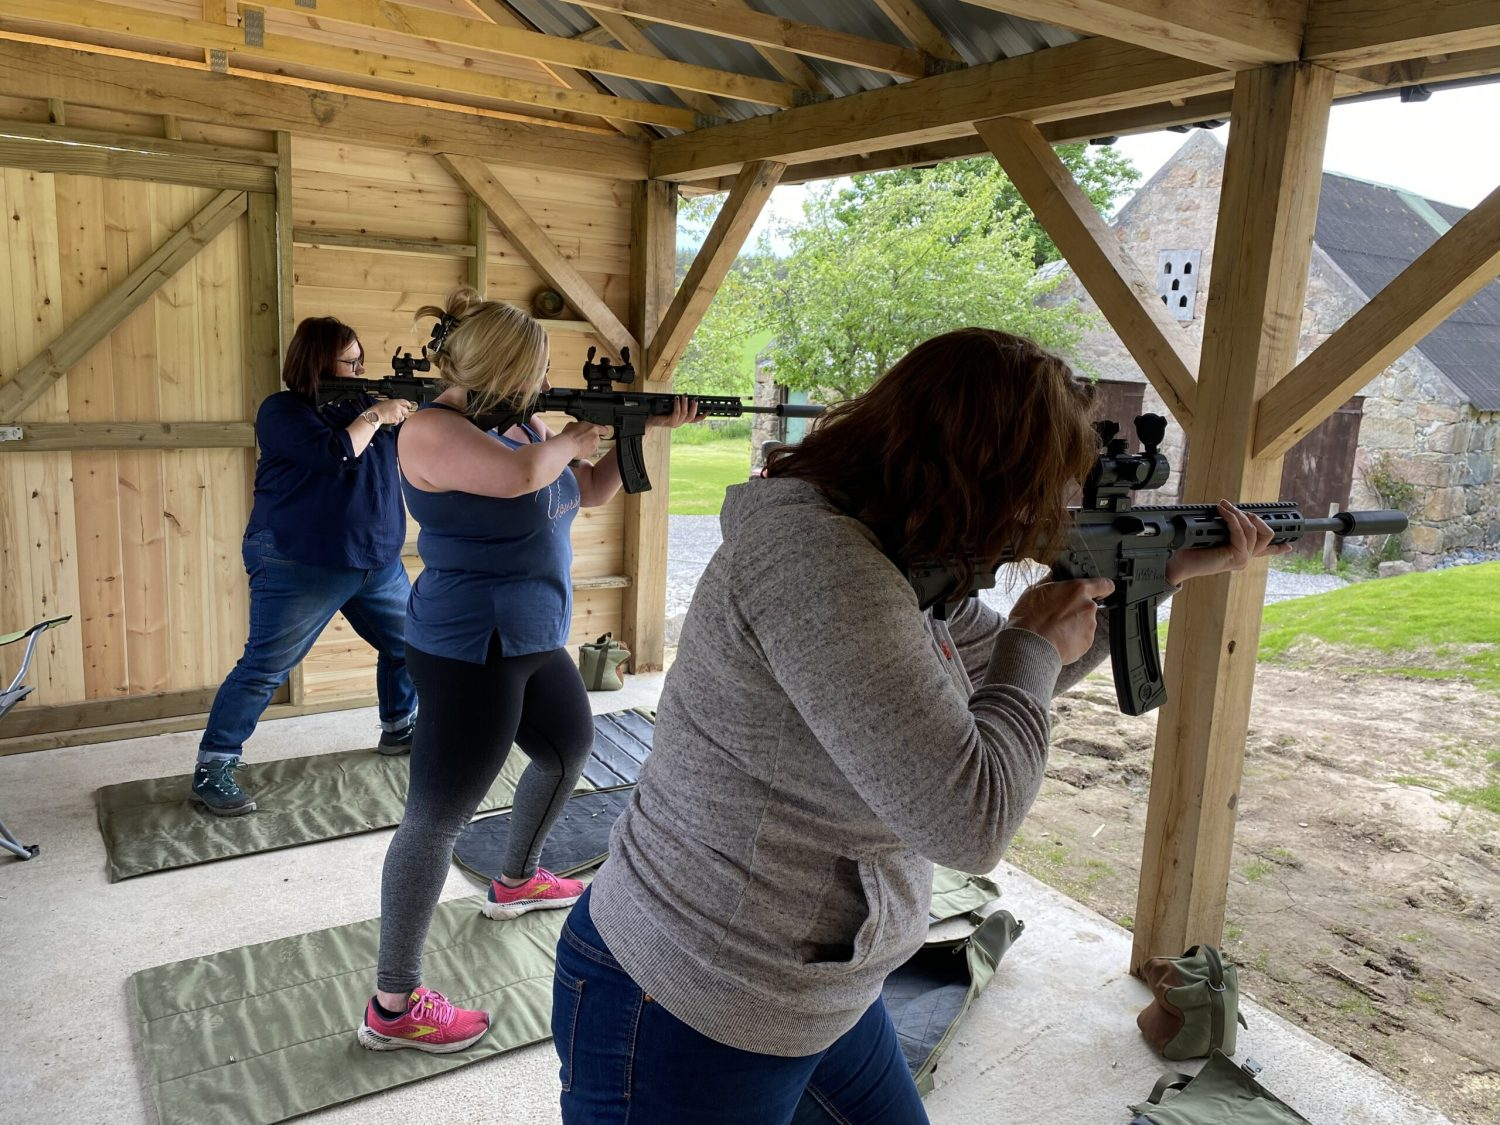 Our first all ladies shooting group